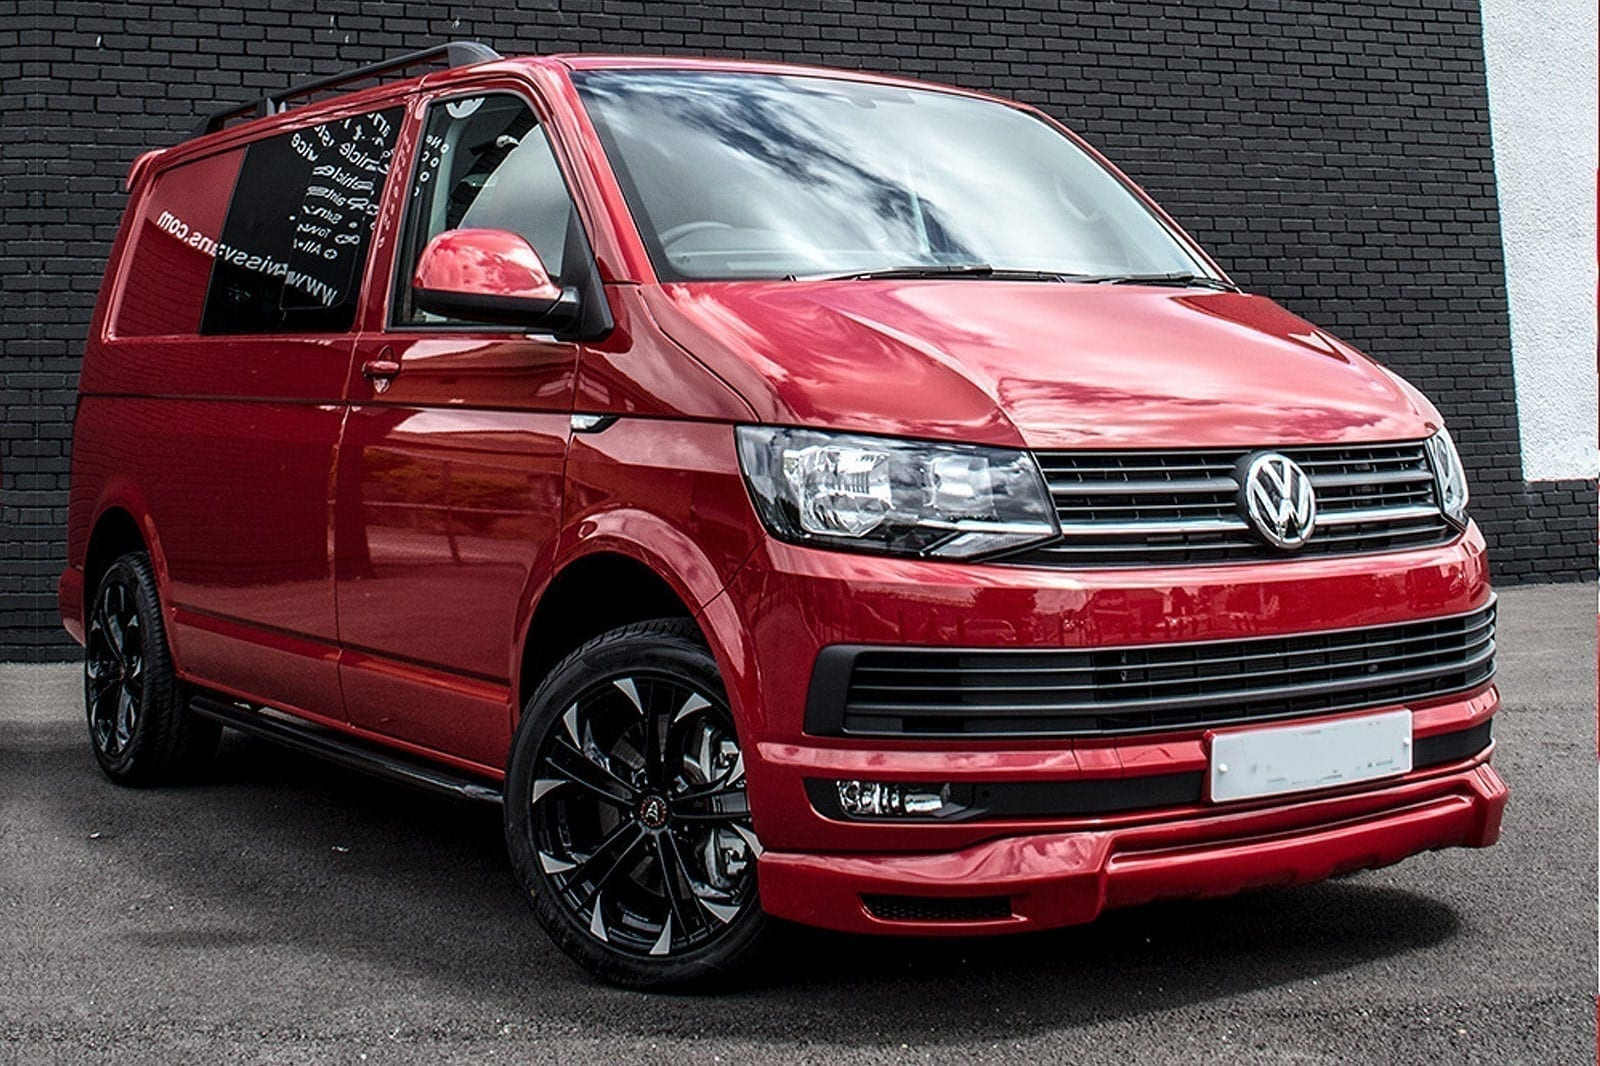 volkswagen transporter kombi wasp t32 204bhp highline. Black Bedroom Furniture Sets. Home Design Ideas